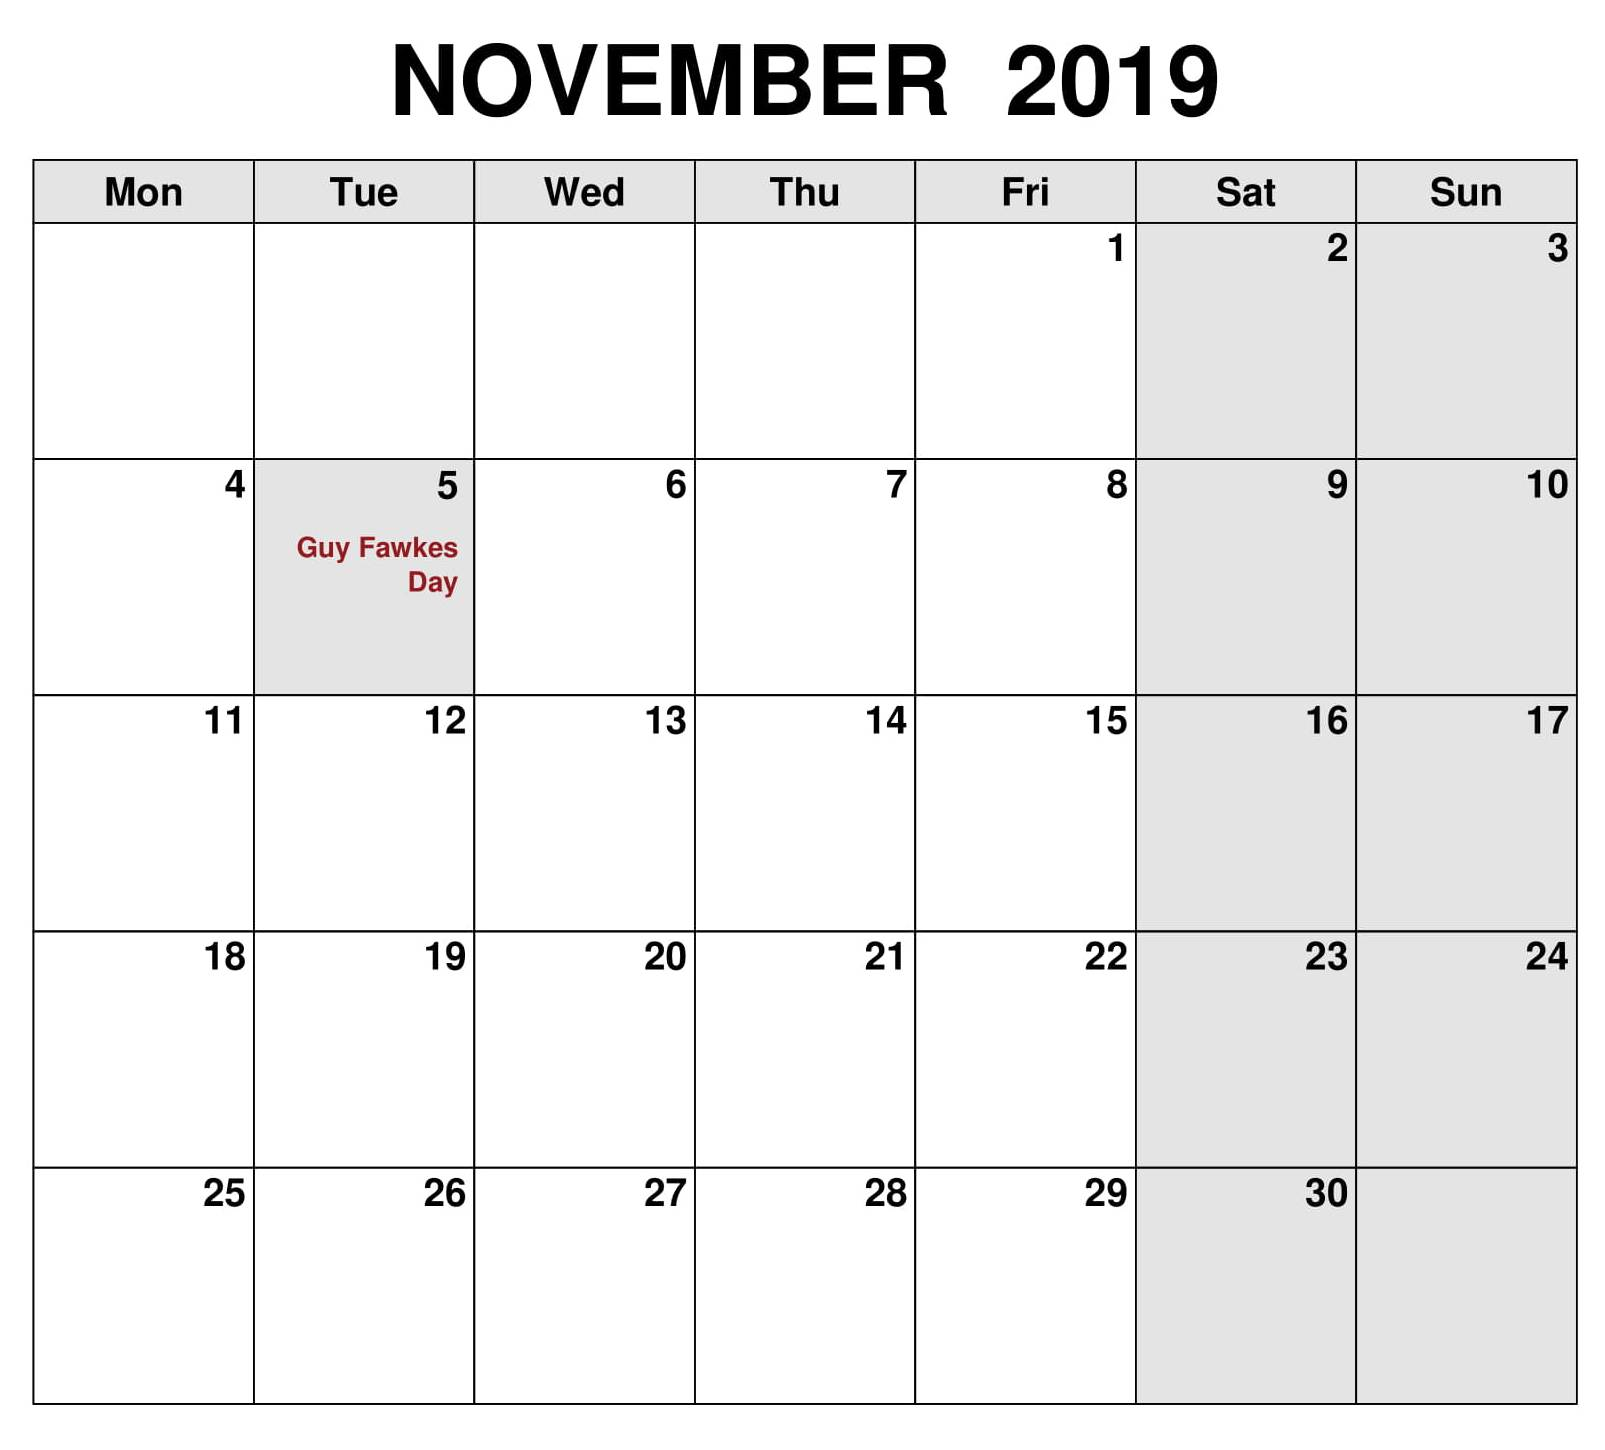 November 2019 Calendar UK Public Holidays